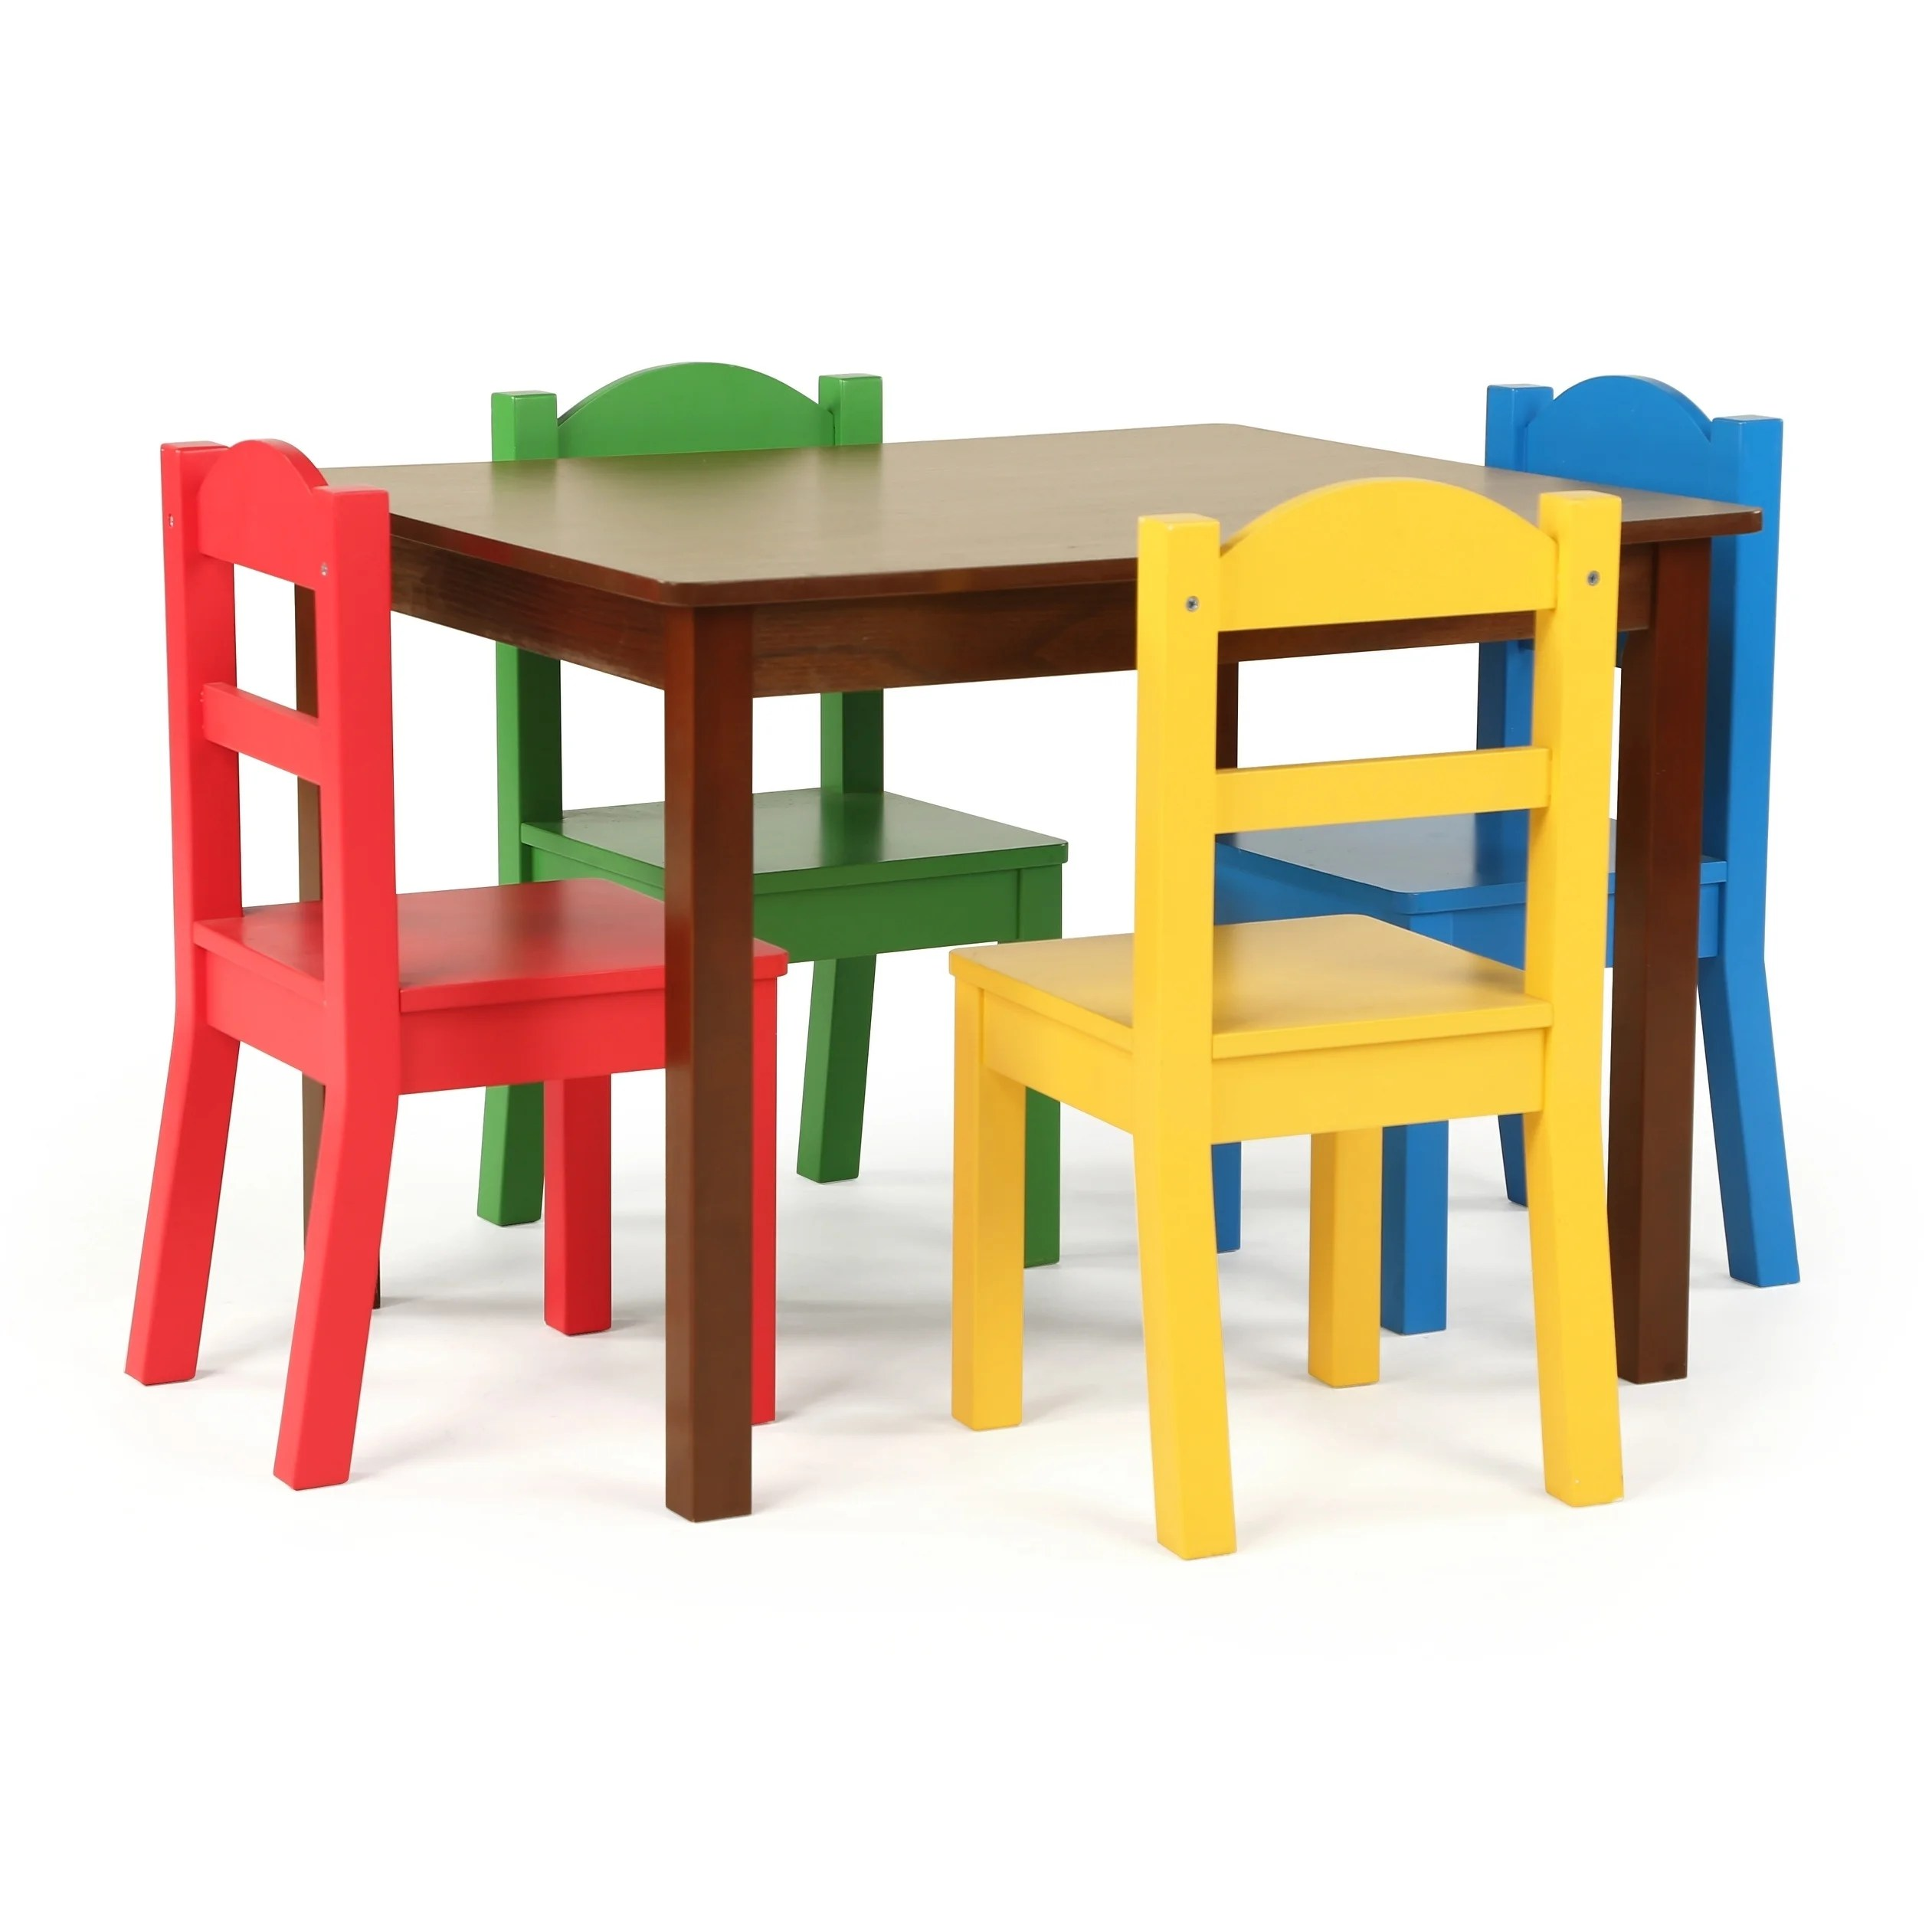 Table With Chairs Discover 5 Piece Wood Kids Table Chairs Set In Dark Walnut Primary